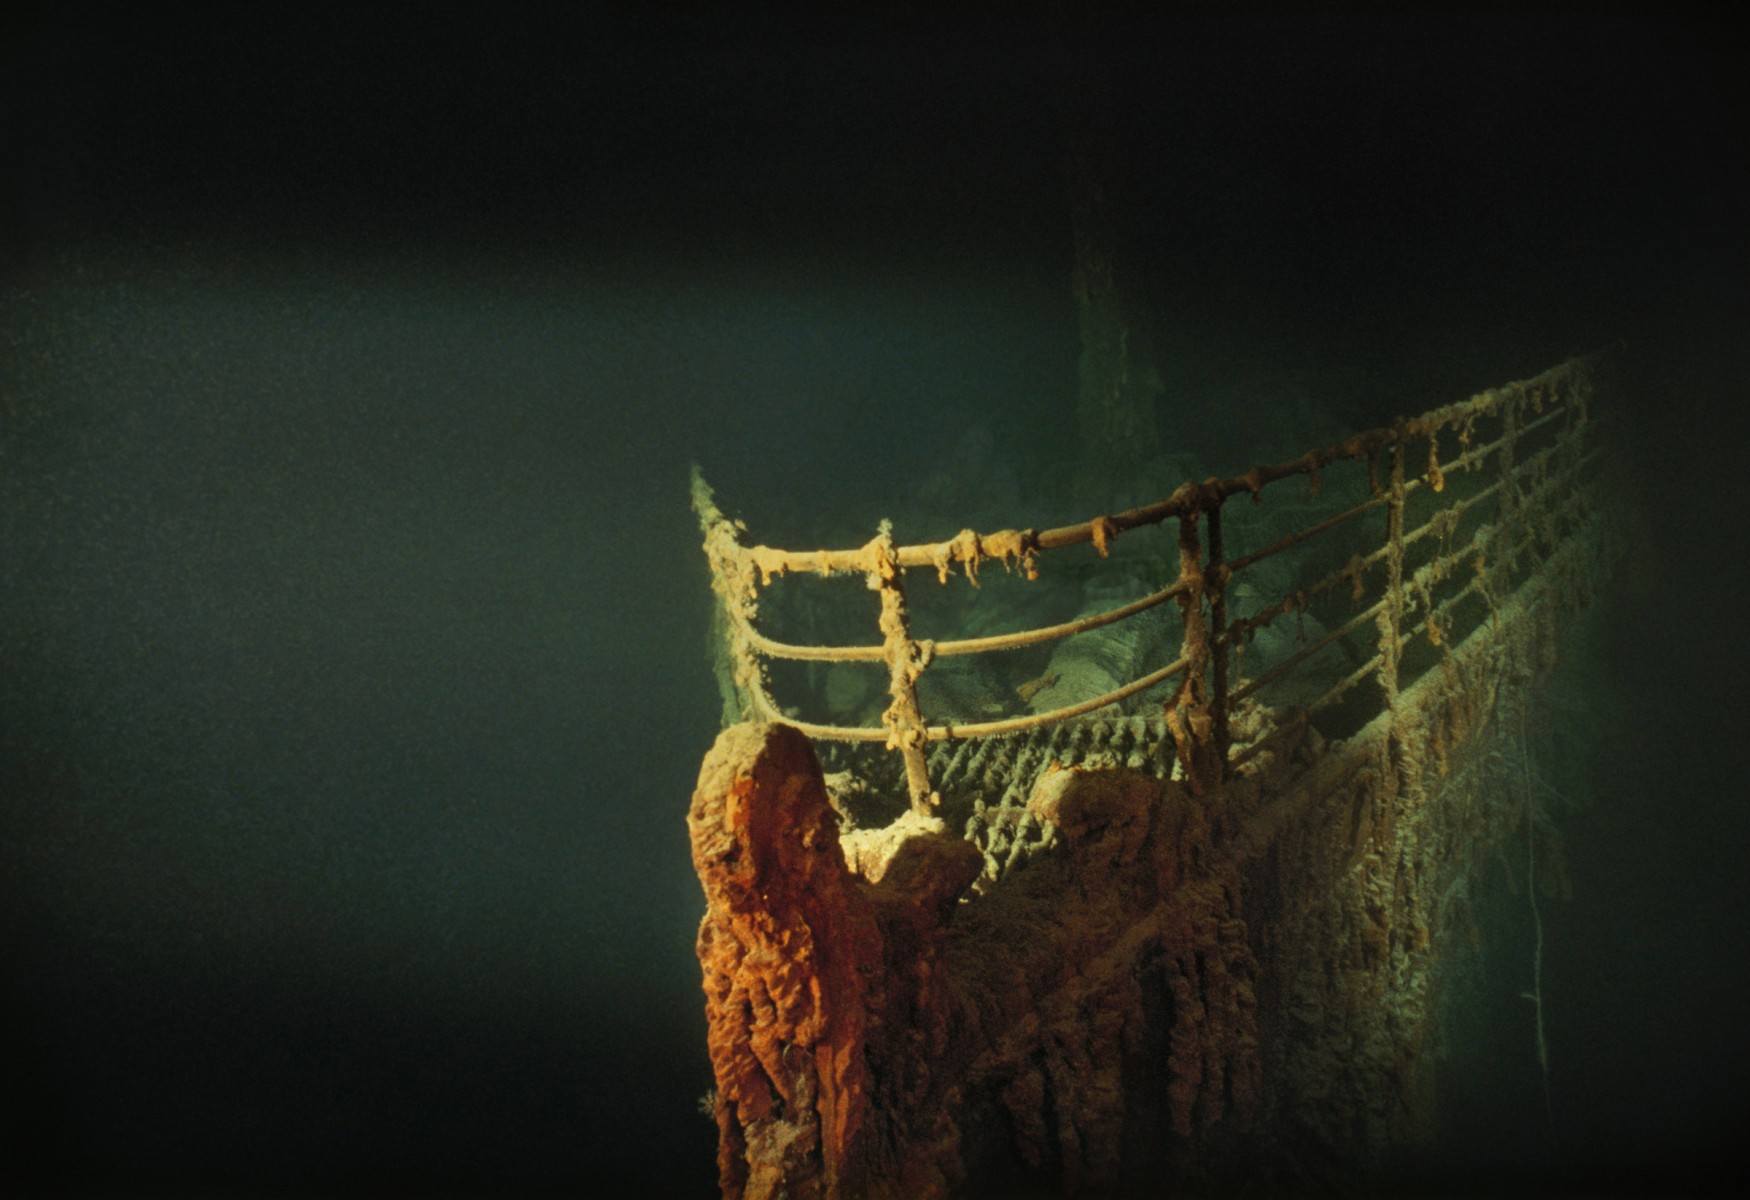 National Geographic Museum Reveals Previously Classified Story About Legendary Shipwreck in 'Titanic: The Untold Story,' Opening May 30